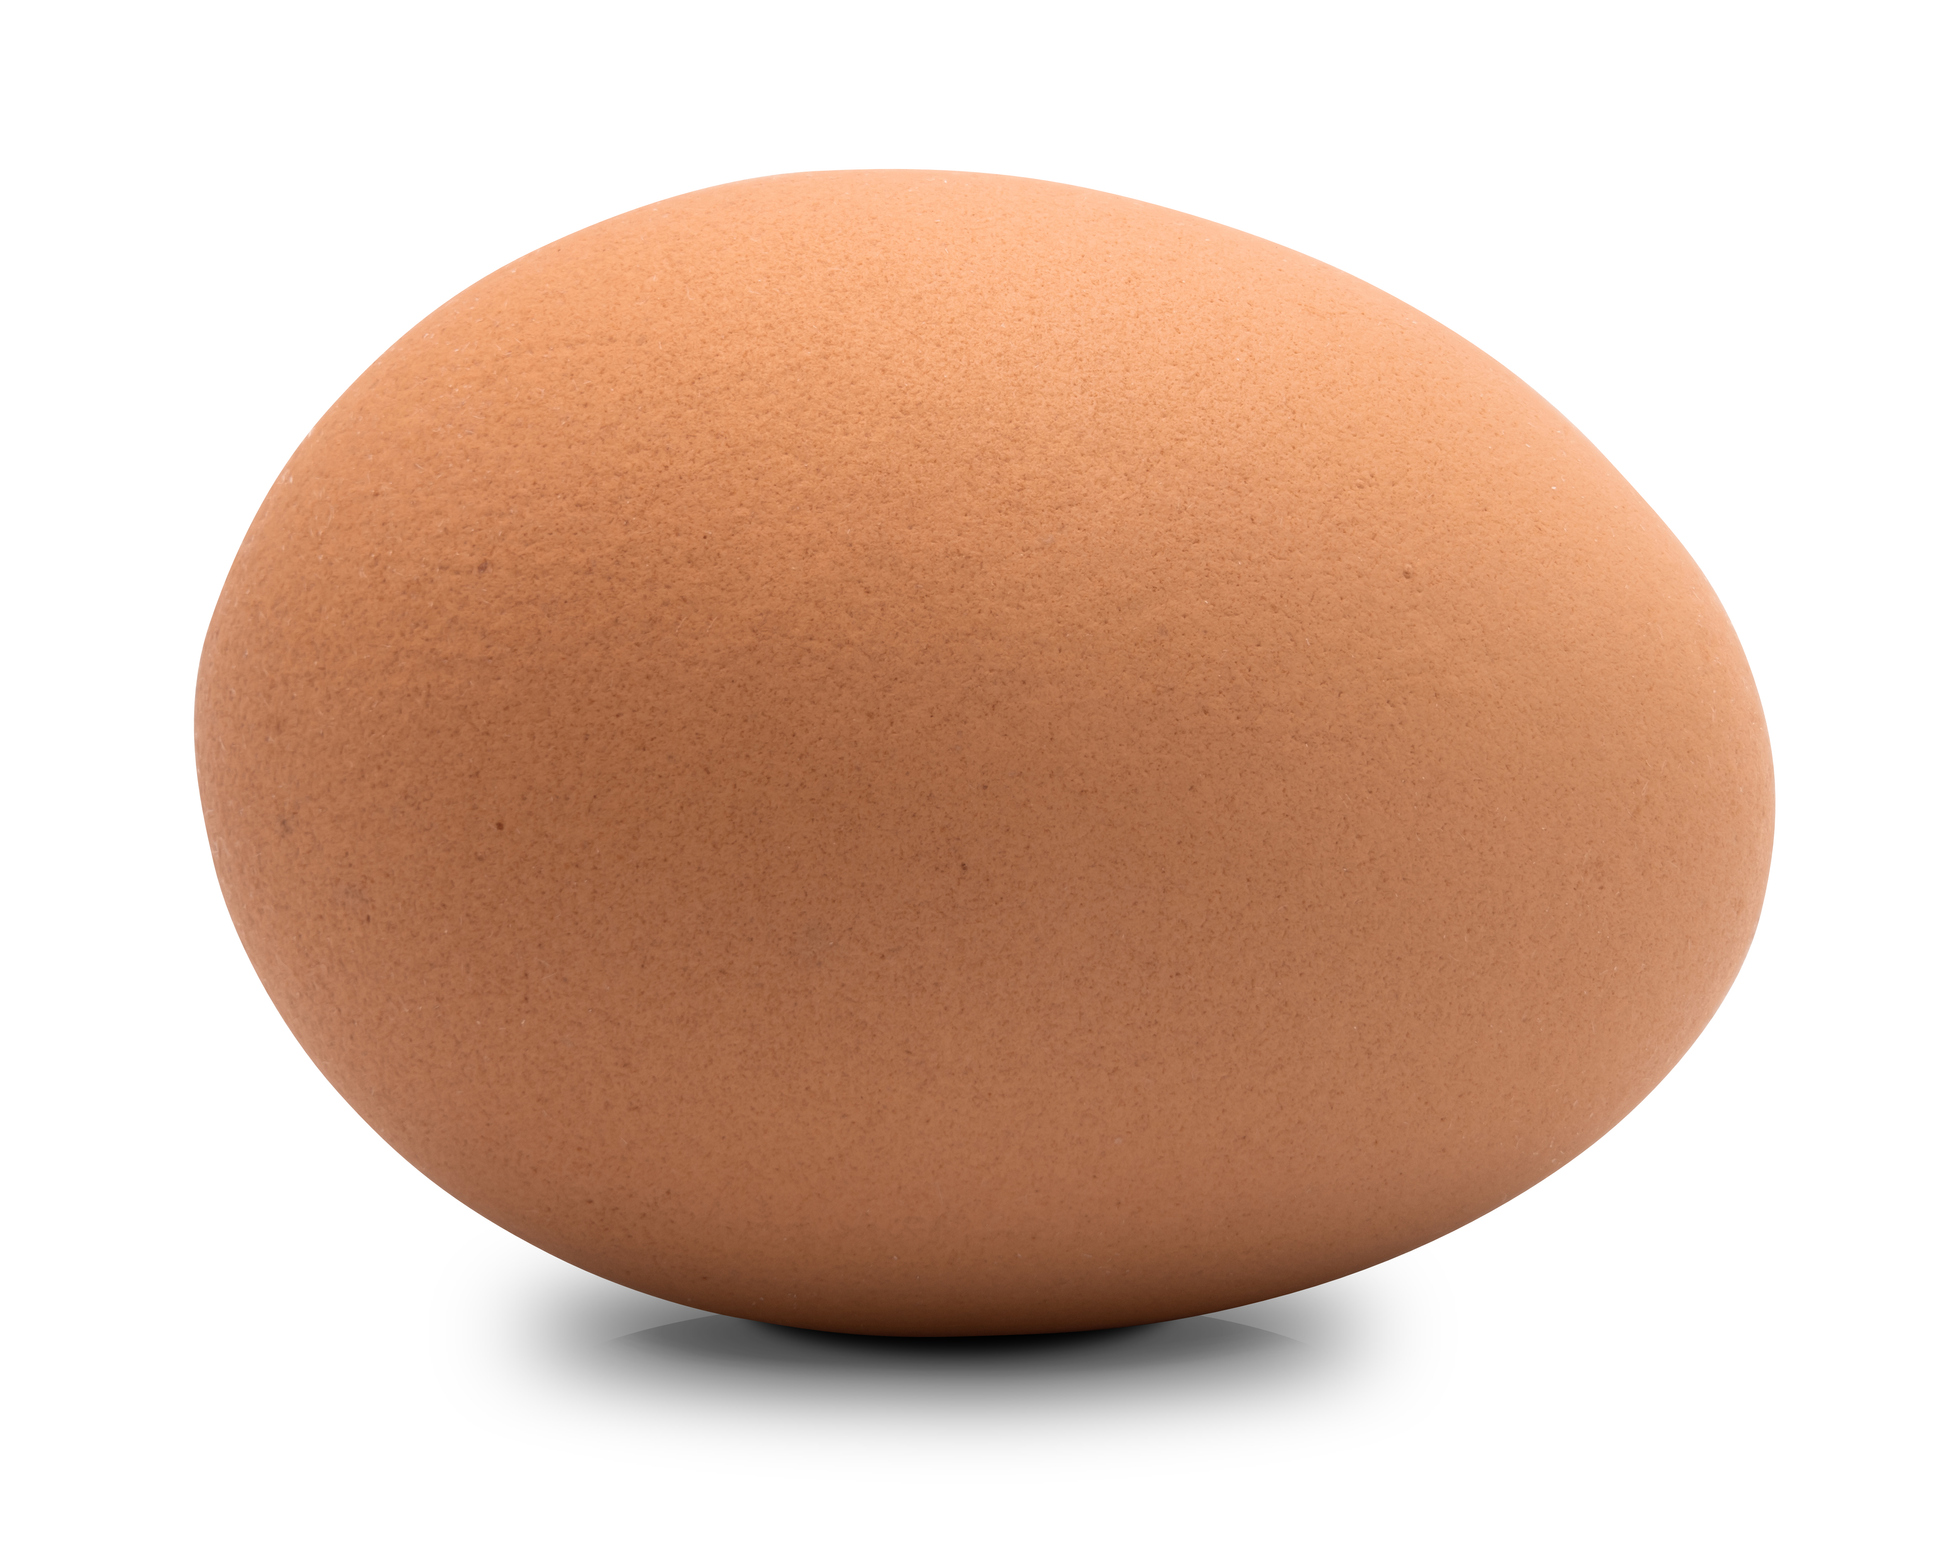 egg with brown shell